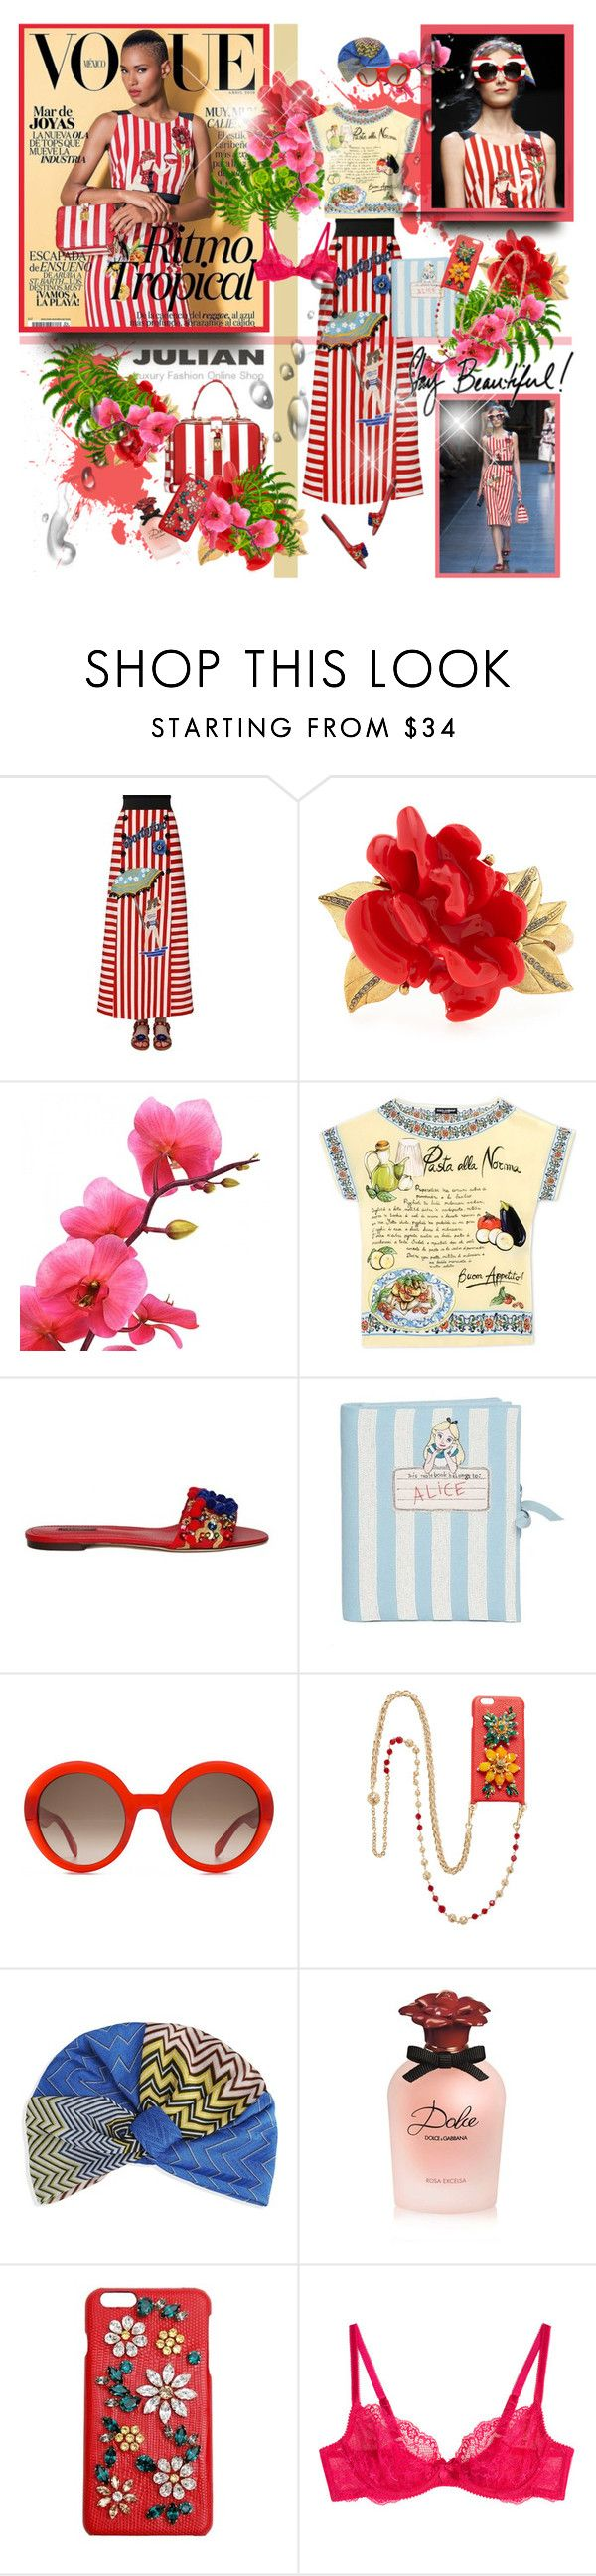 """Ysaunny Brito Vogue Mexico 2016"" by merrygorounds ❤ liked on Polyvore featuring Dolce&Gabbana, Oscar de la Renta, Olympia Le-Tan, Alexander McQueen, Missoni Mare, L'Agent By Agent Provocateur, polyvorecommunity, Julian, polyvoreeditorial and oversizedflorals"